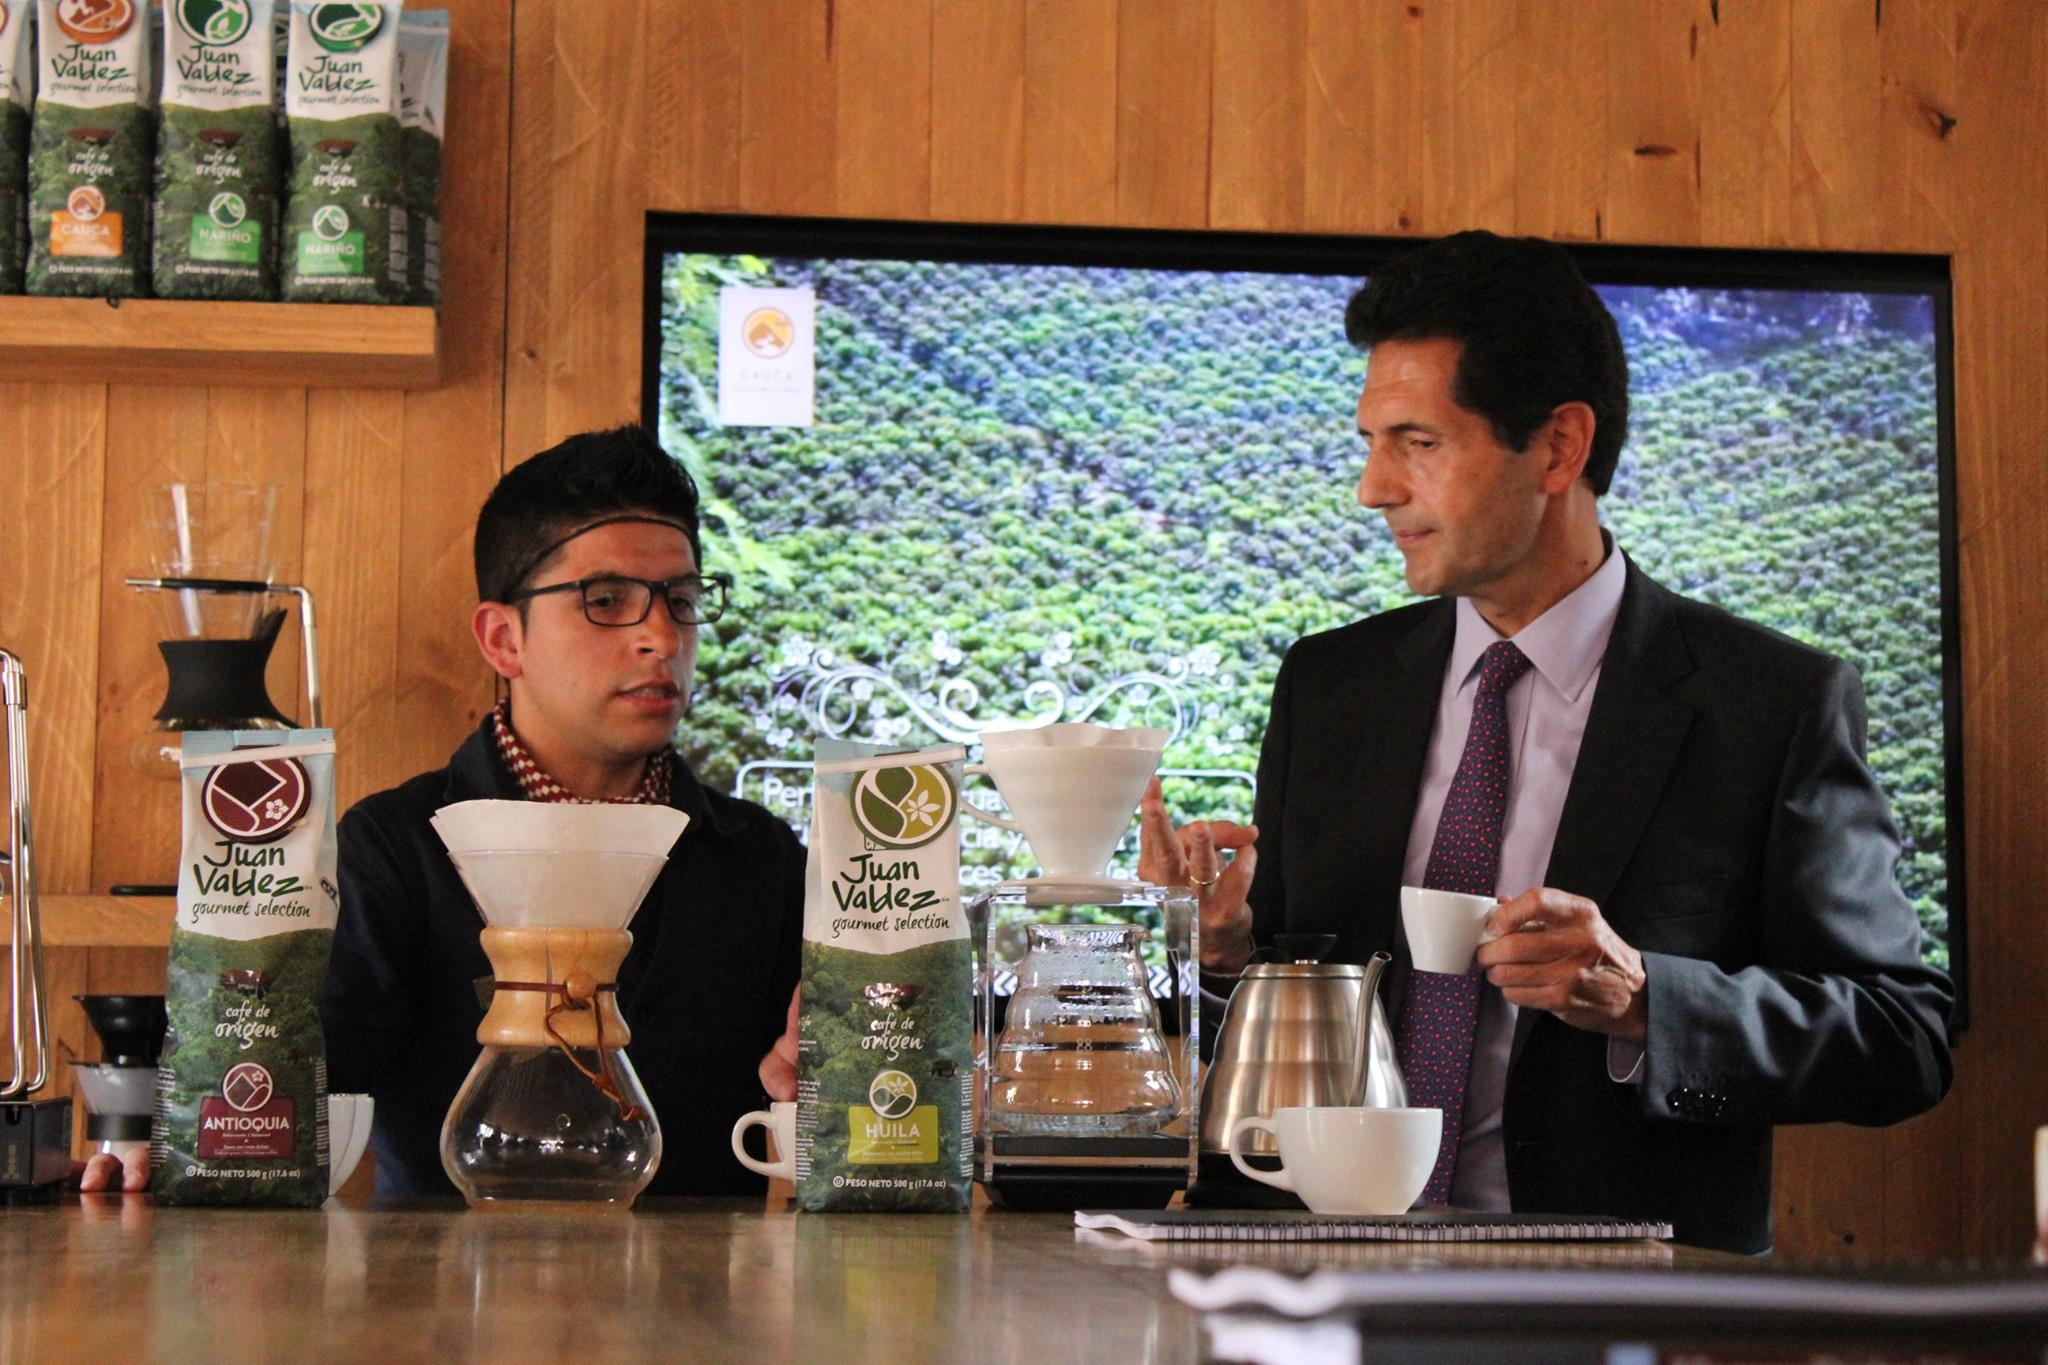 Procafecol President Hernan Mendez with Baricultore in Mug of Coffee at Juan Valdez Cafe in Bogota, Colombia